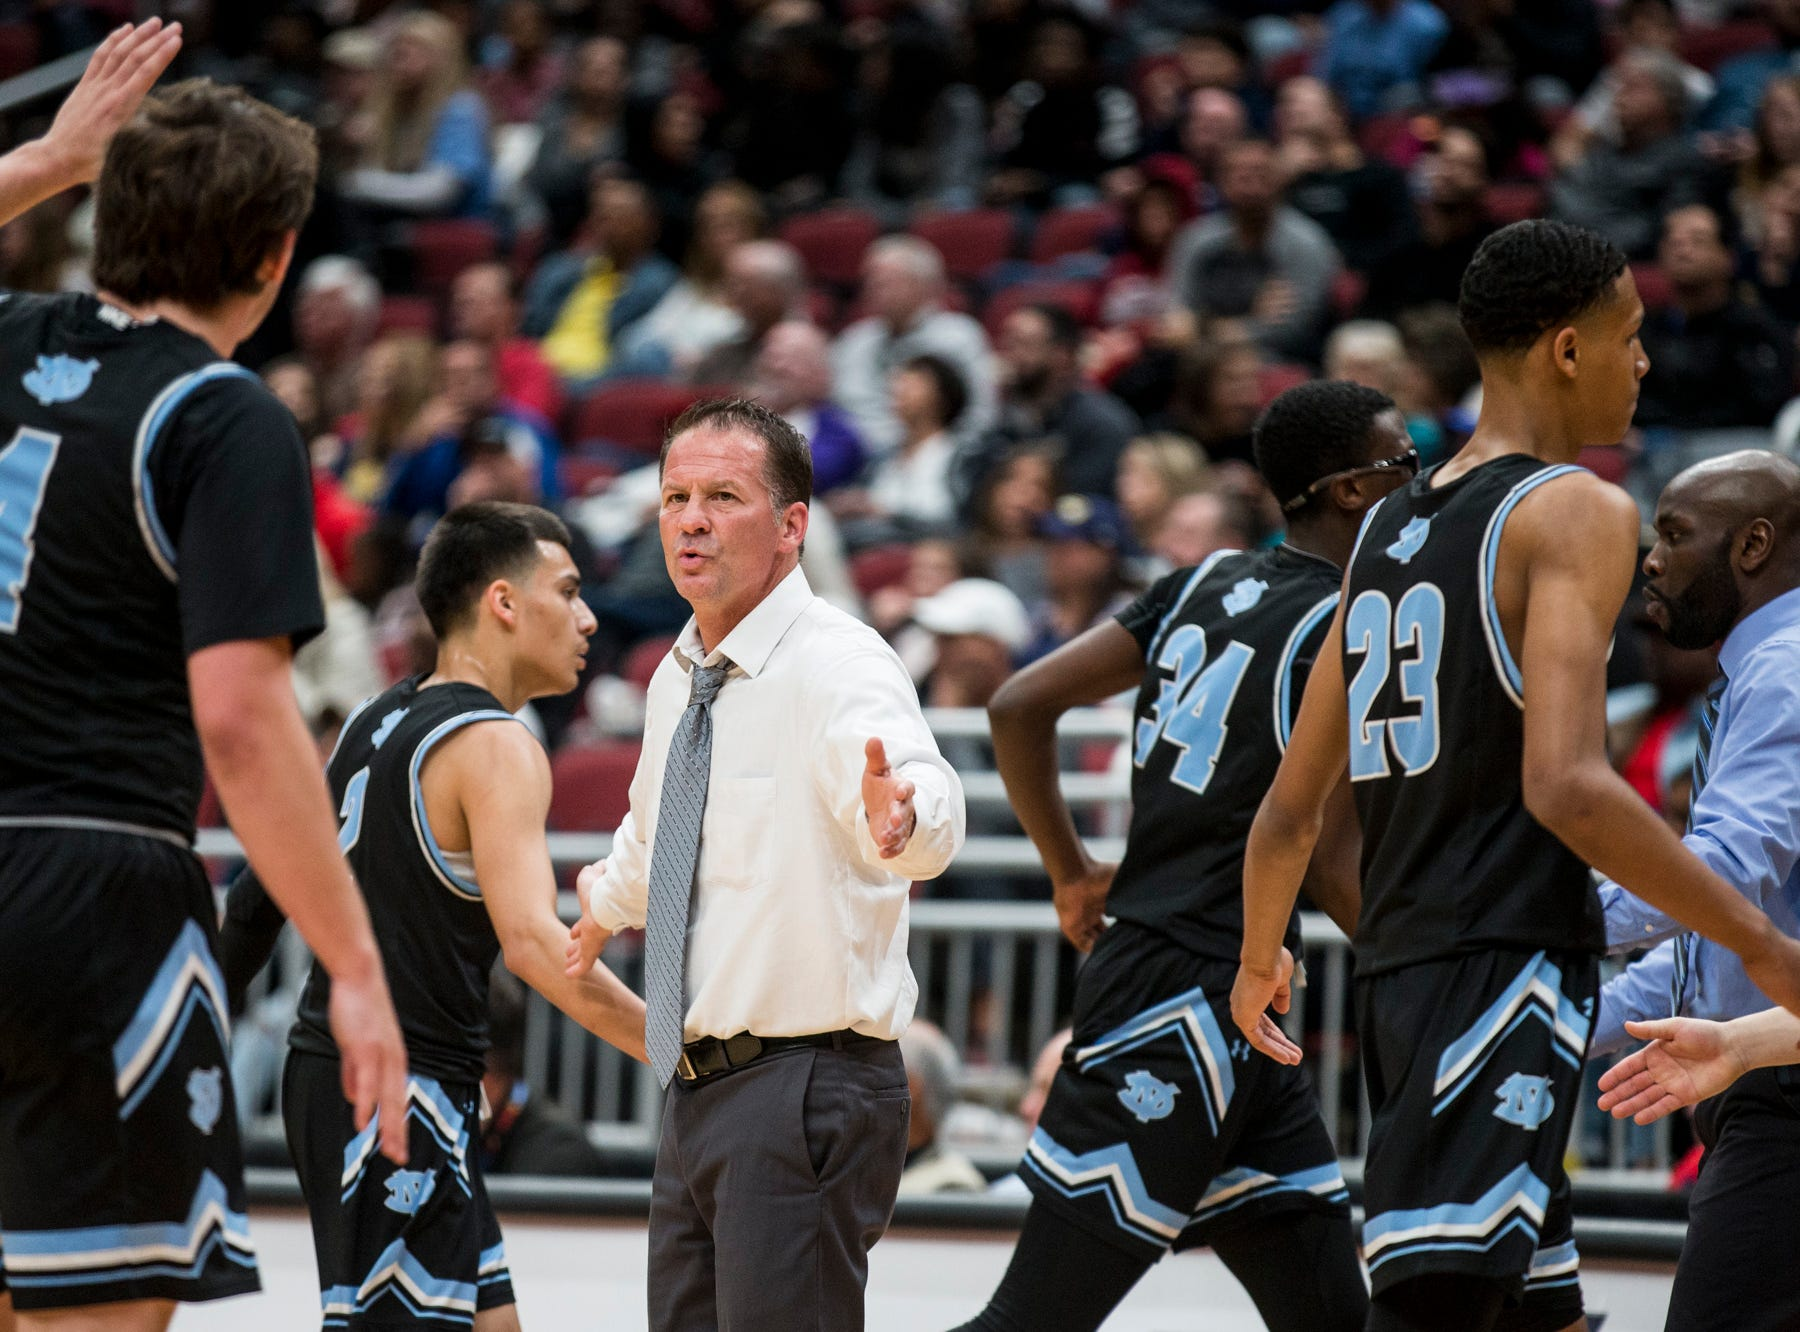 Deer Valley head coach Jed Dunn talks to players during a timeout during the 4A boys basketball championship on Saturday, Feb. 23, 2019, at Gila River Arena in Glendale, Ariz.